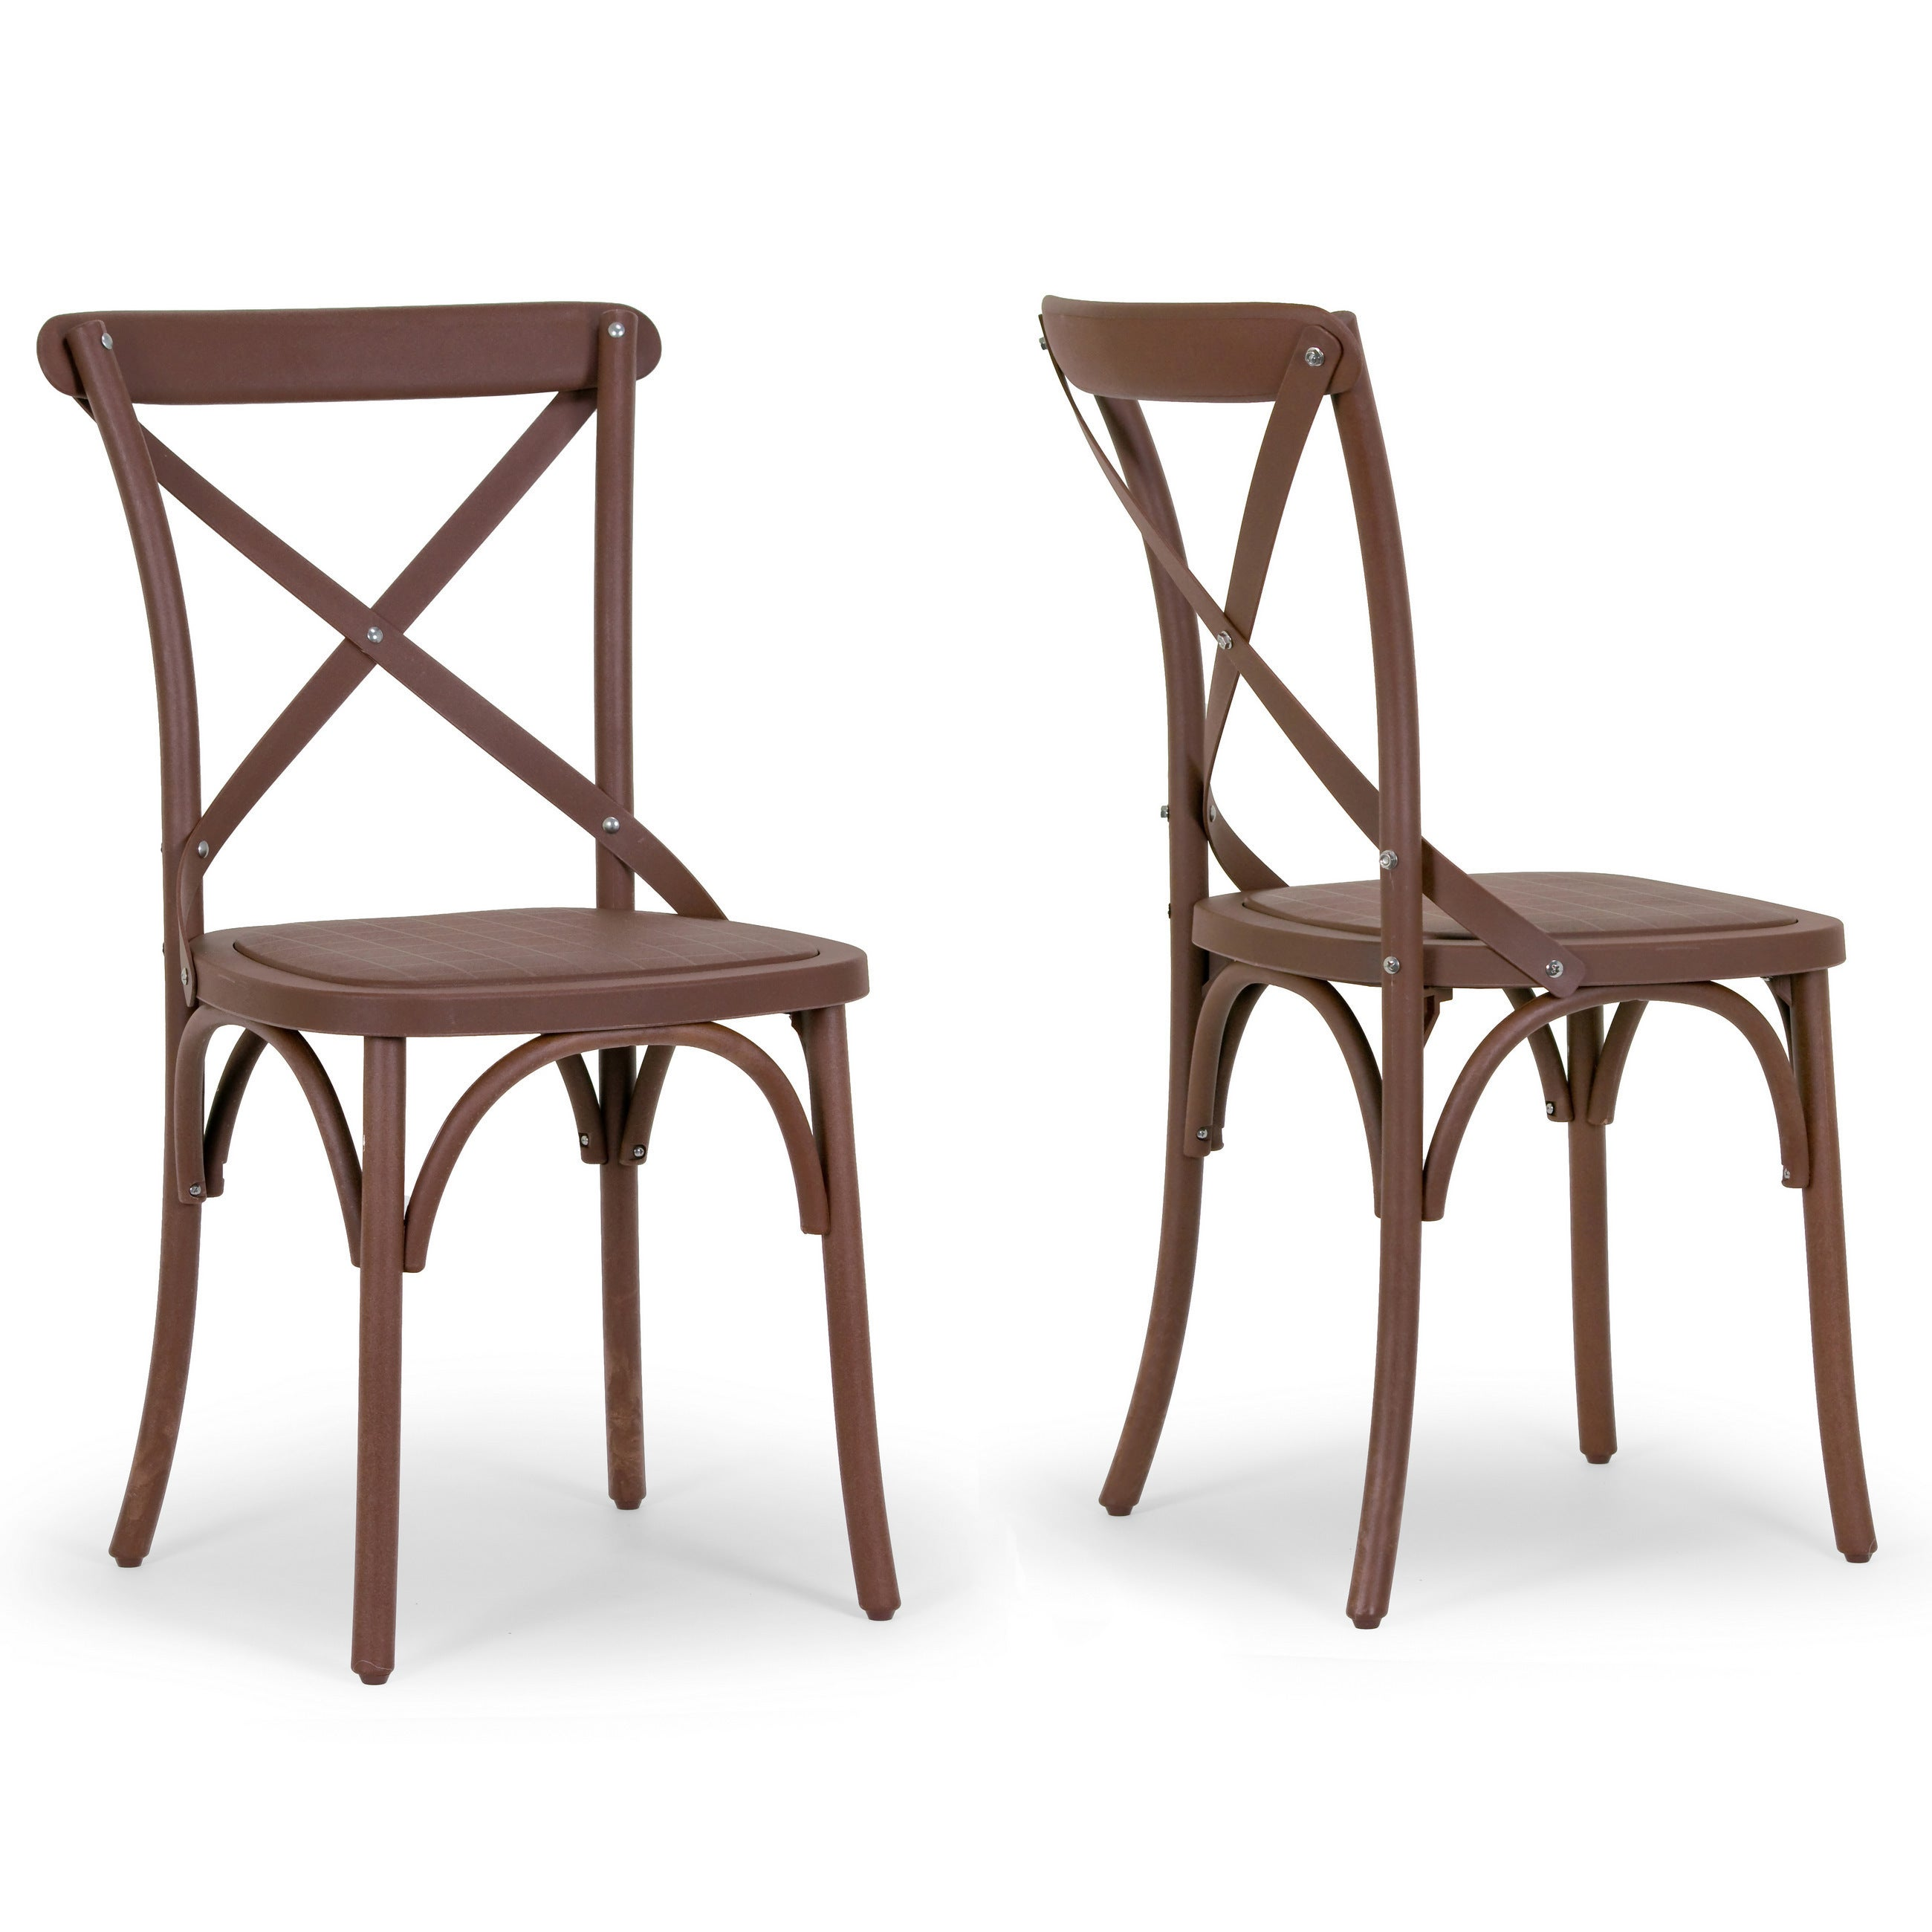 cross back dining chairs. Aleah Outdoor/Indoor Cross Back Dining Chair (Set Of 2) Chairs